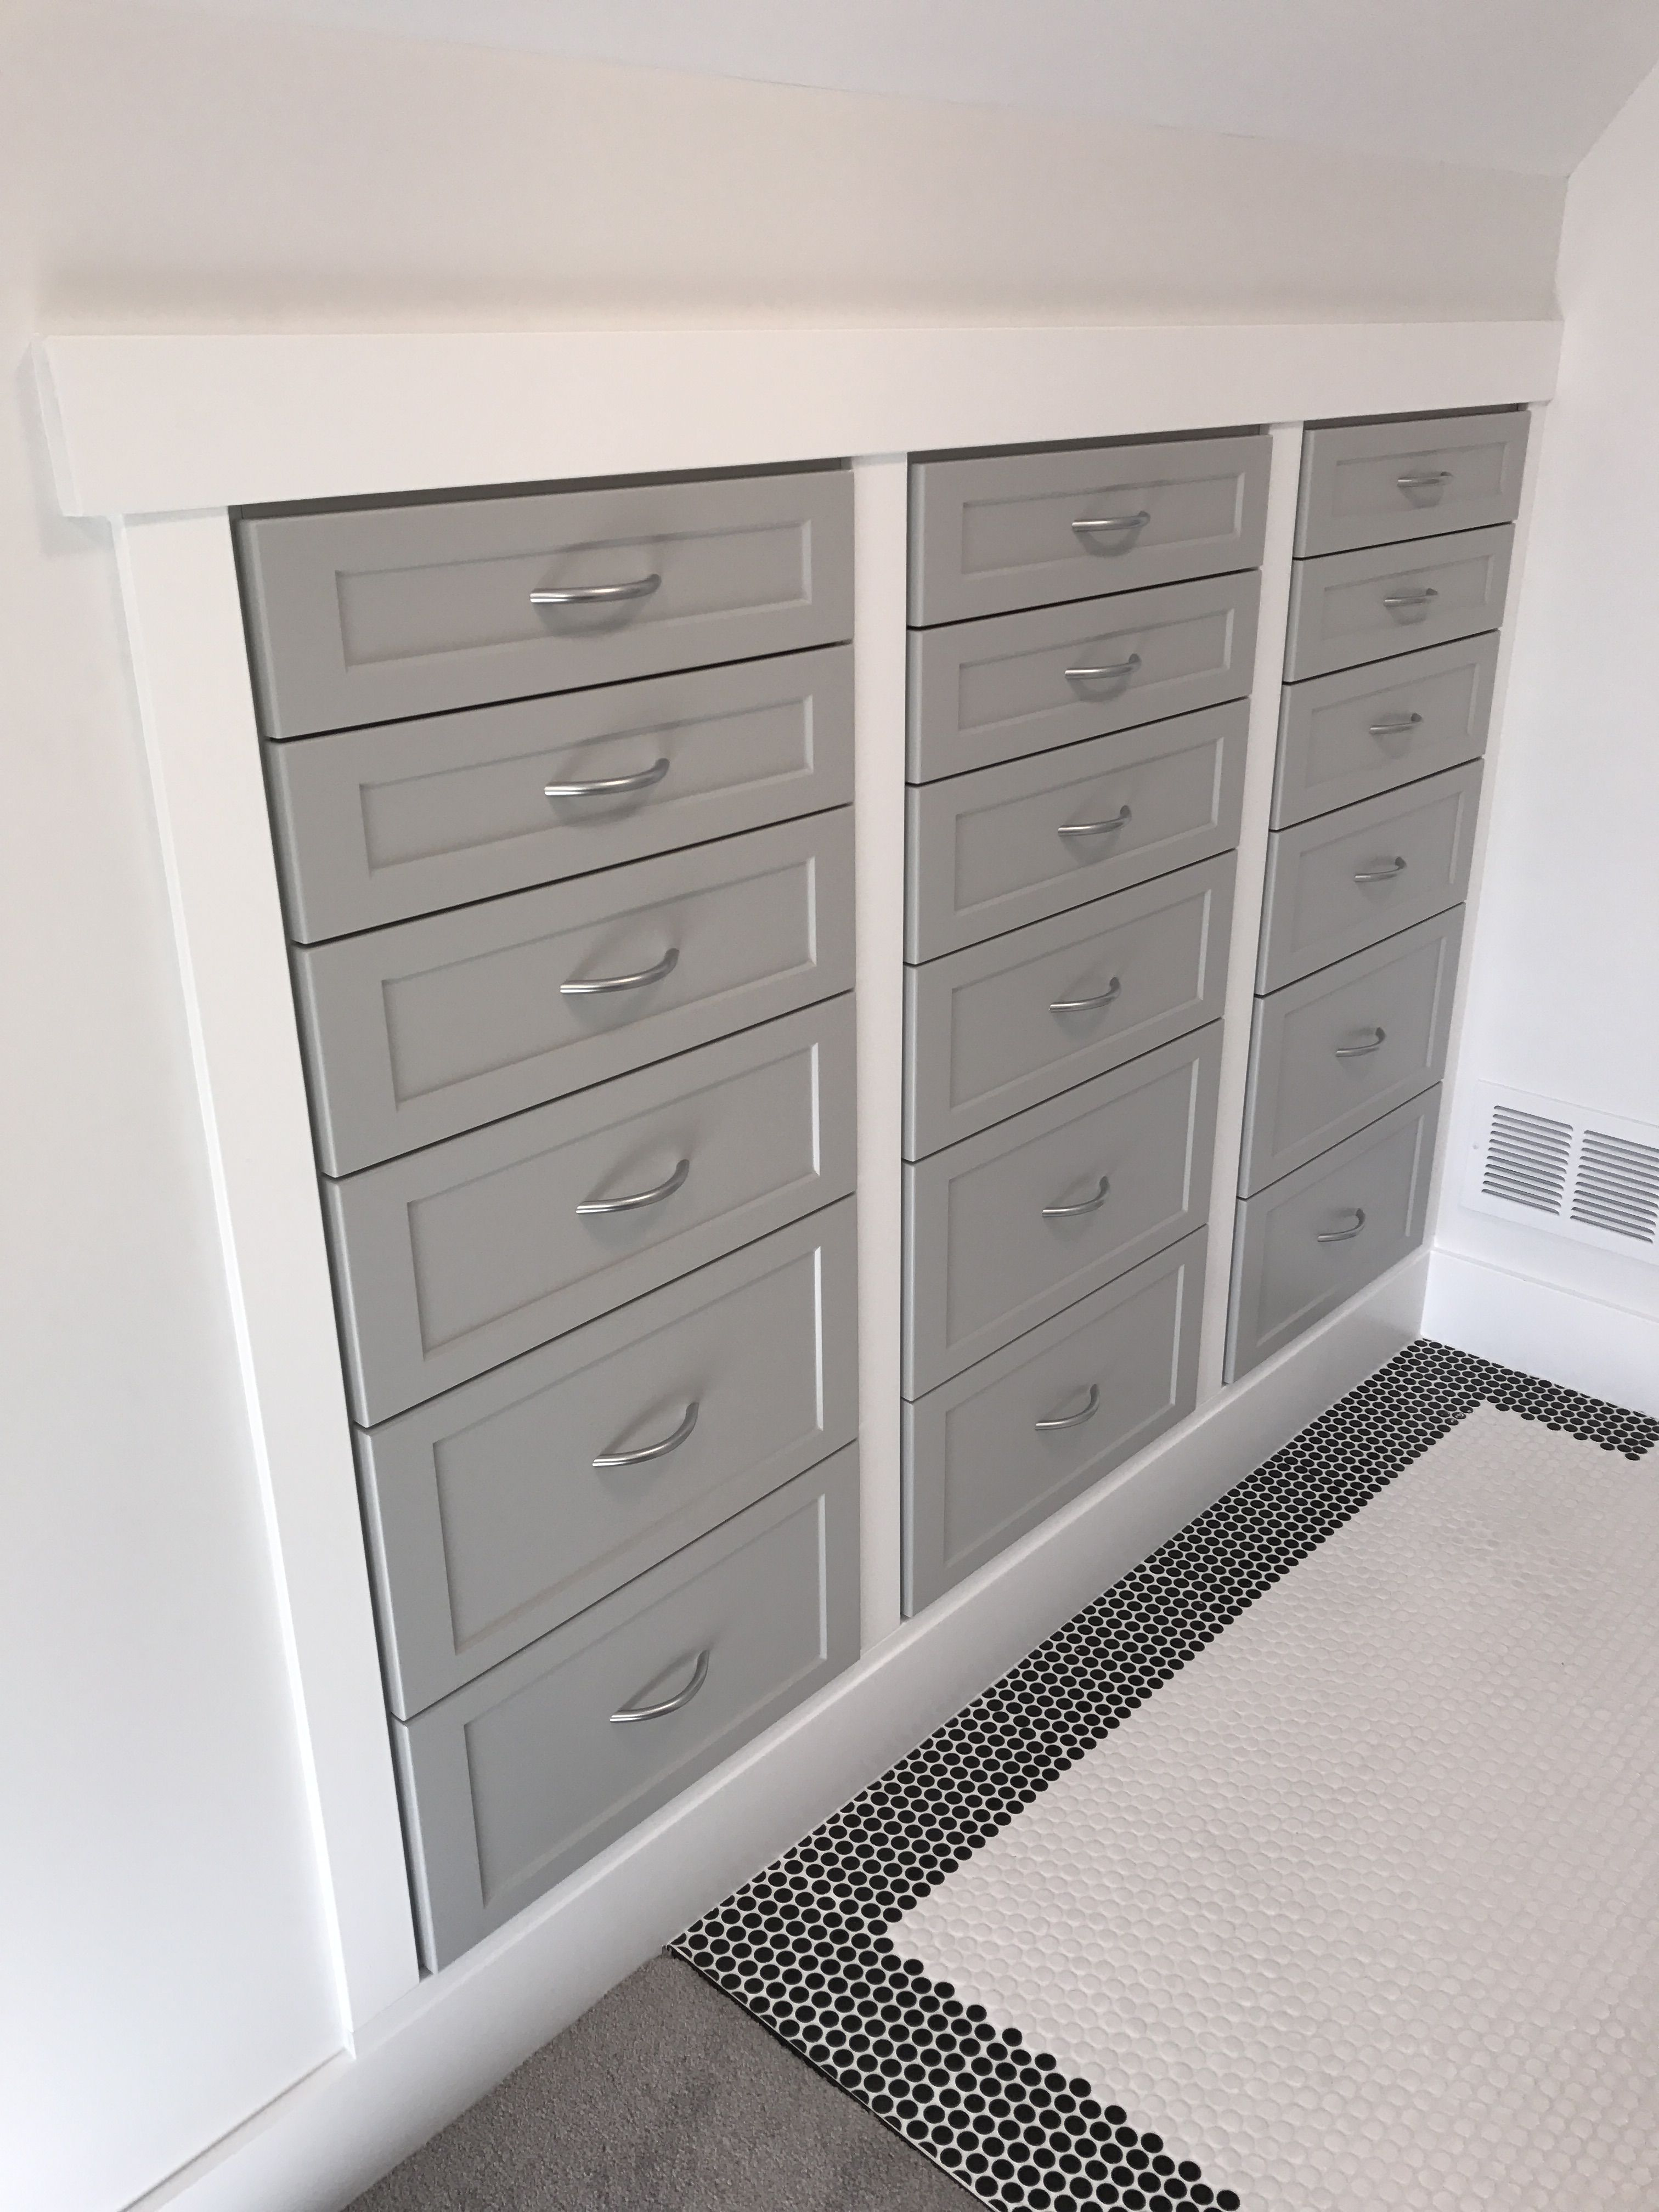 Merveilleux Built In Wall Storage Can Provide You The Storage You Need Without Taking  Up Floor Space. Custom Organization By Closets For Life, Minneapolis U0026 St.  Paul.